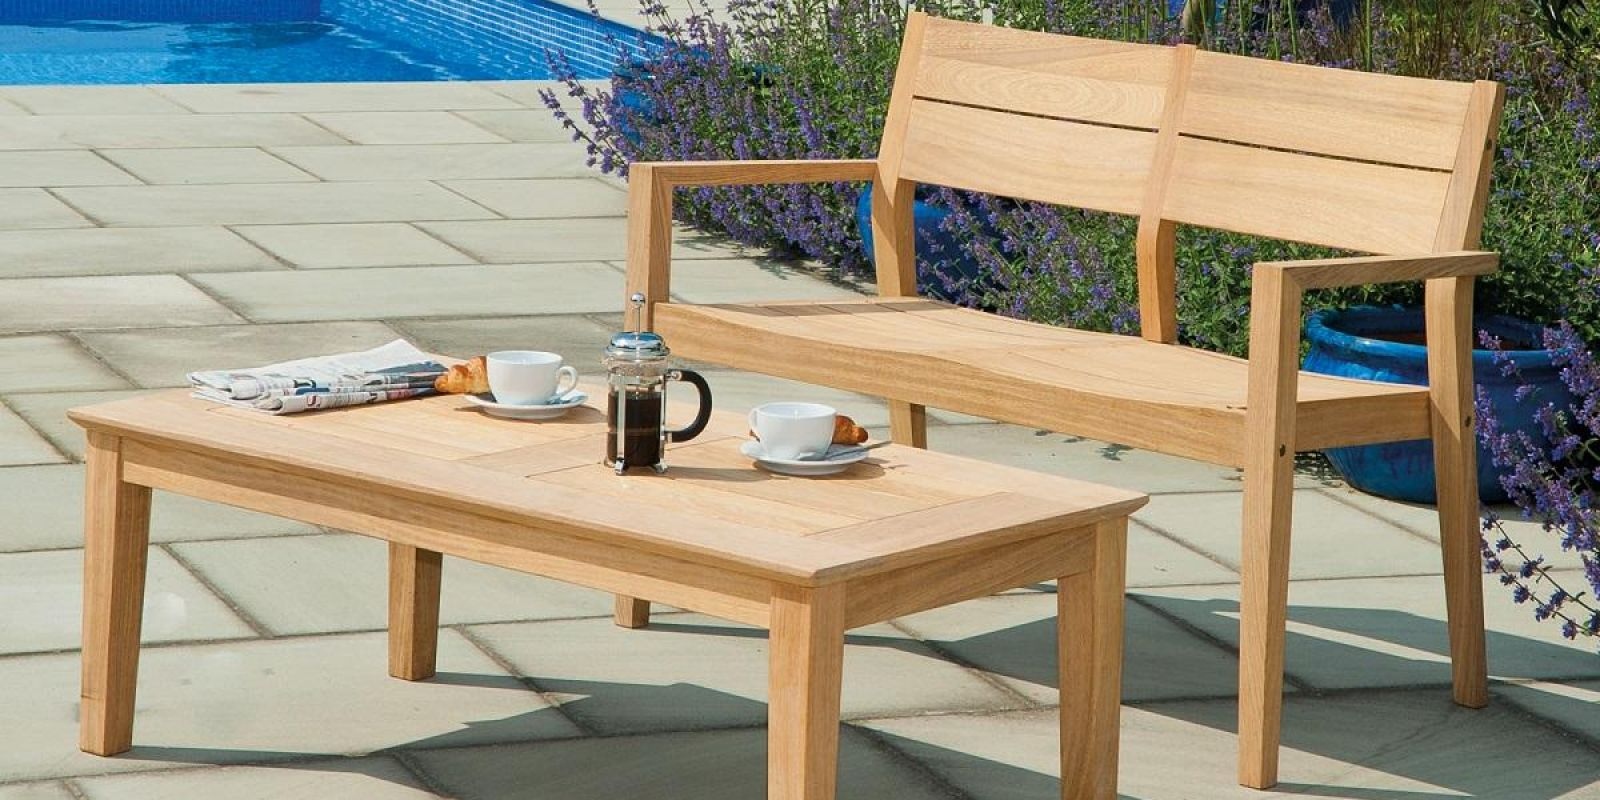 Outdoor Furniture | American Casual Living on Porch & Patio Casual Living id=95331